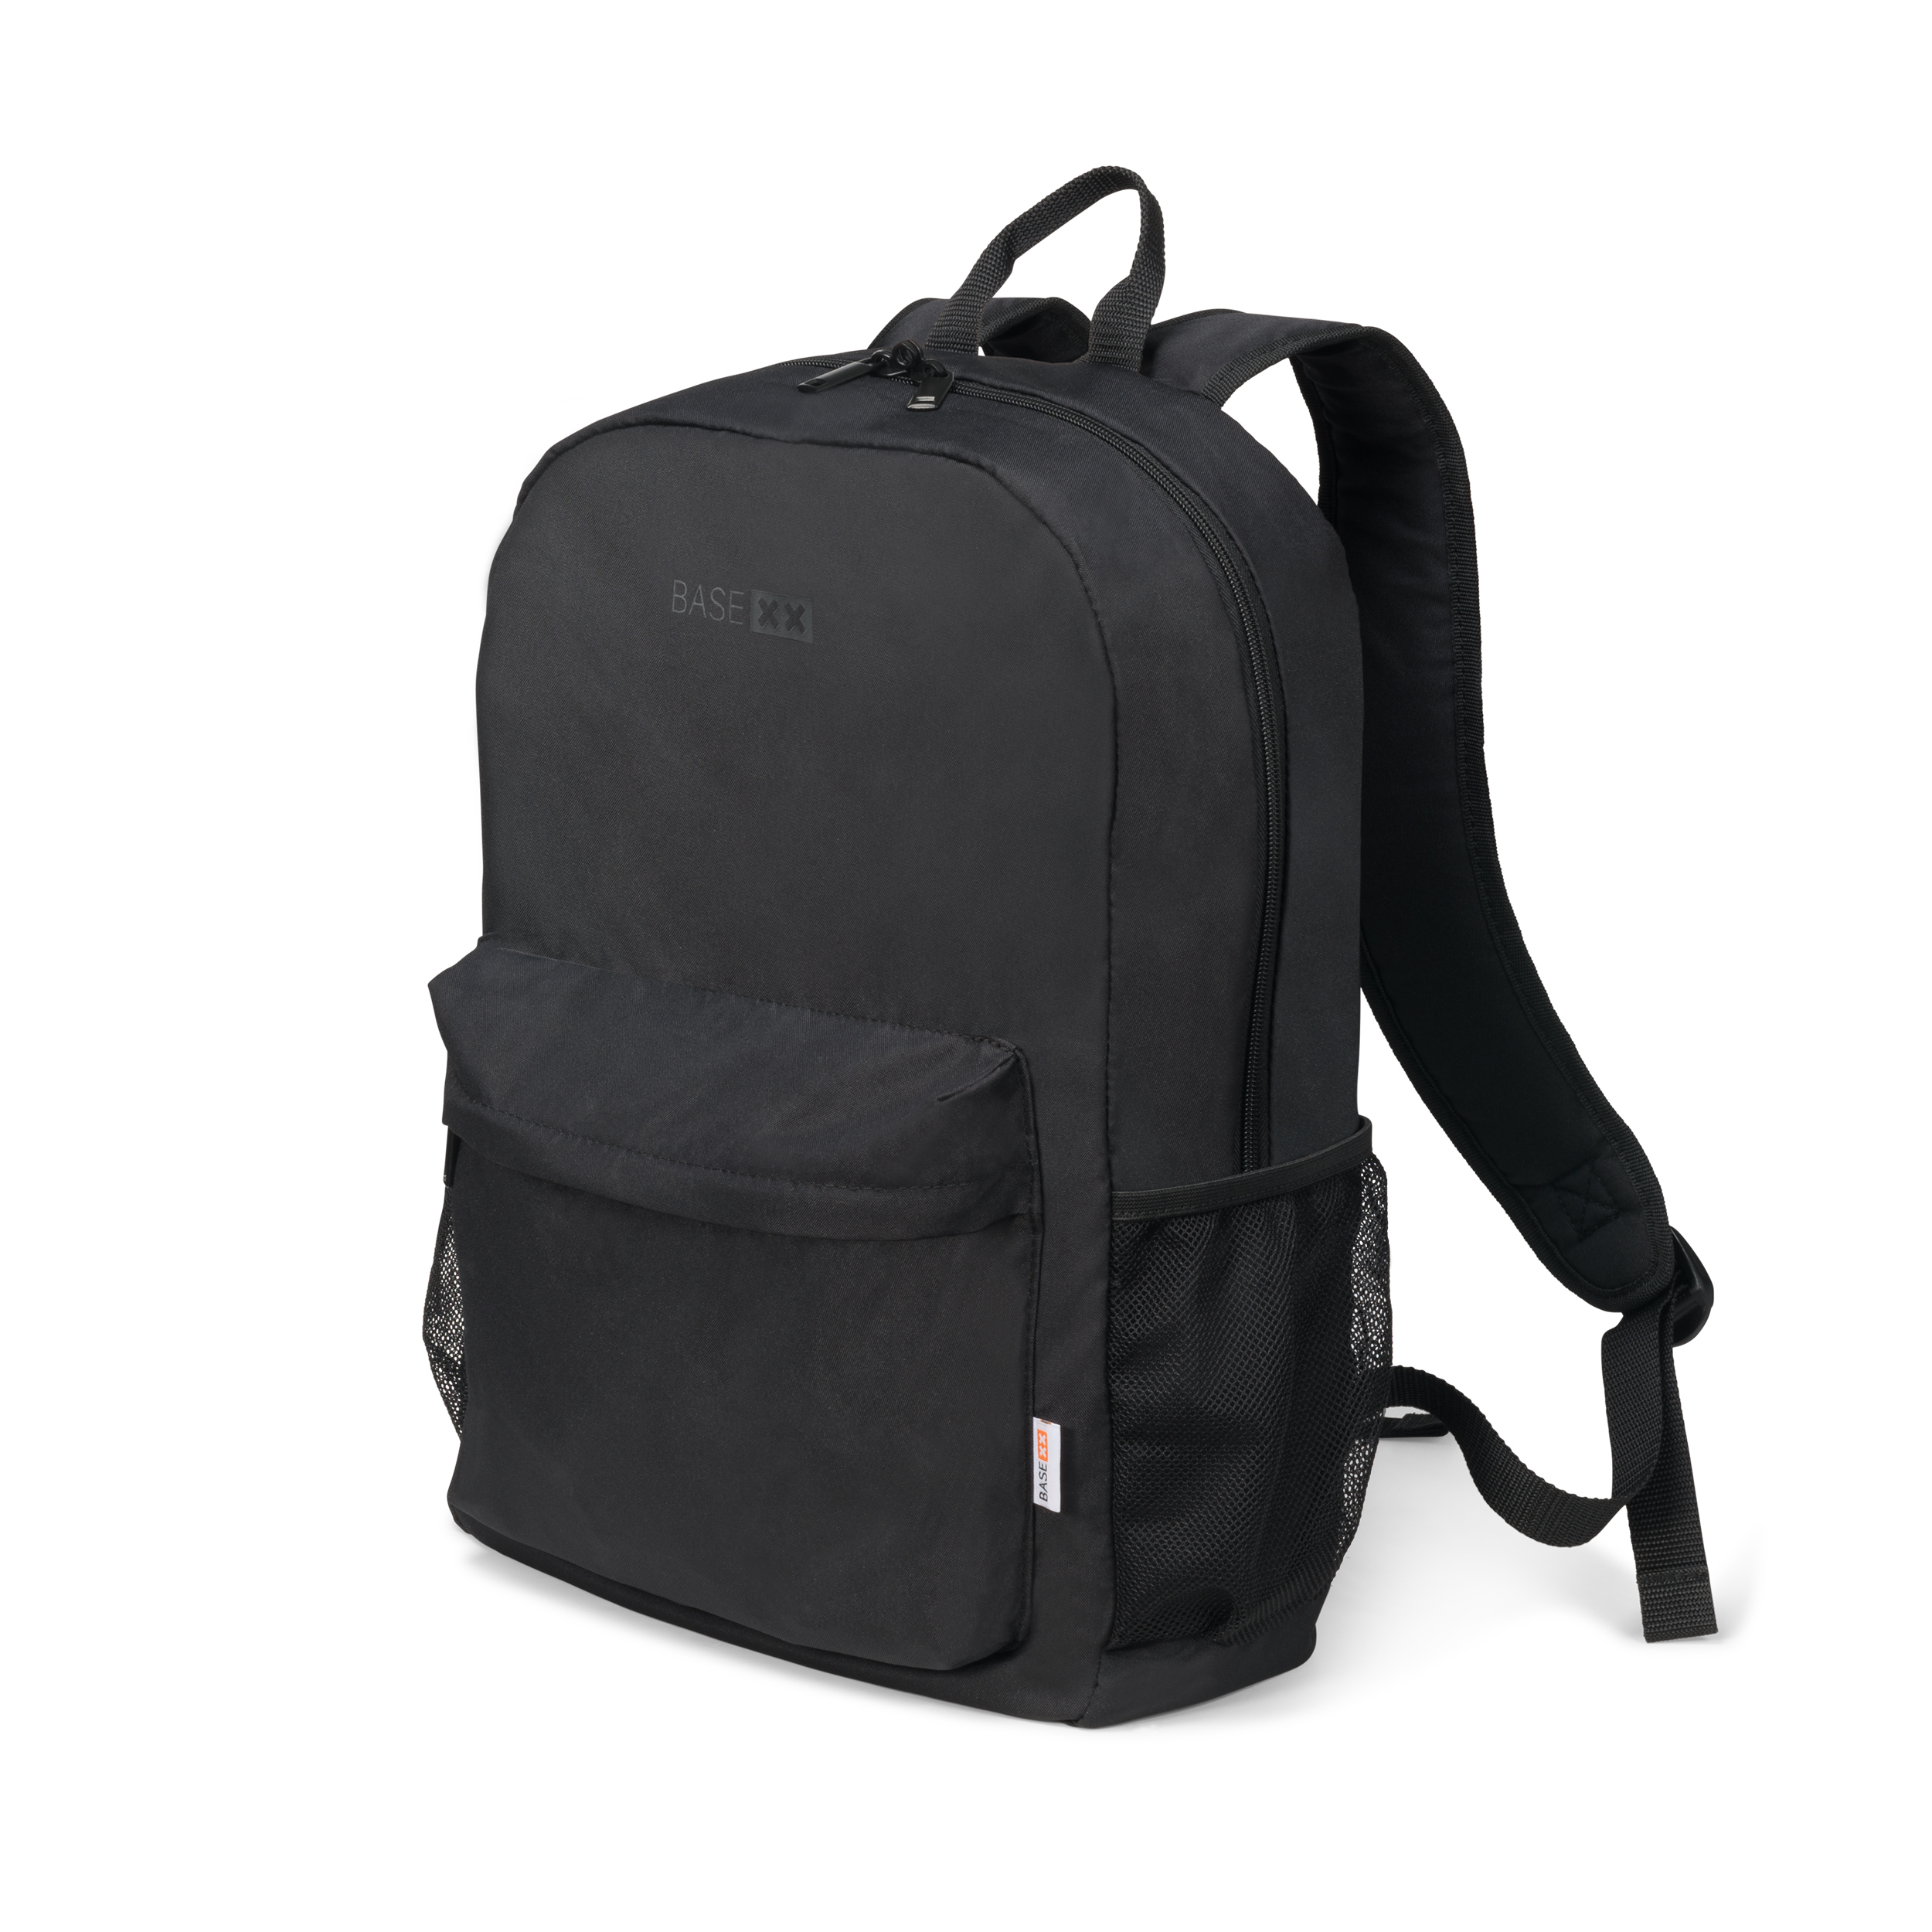 "Base XX B2 - Notebook Carrying Backpack - 15.6"" - Black D31633 - C2000"